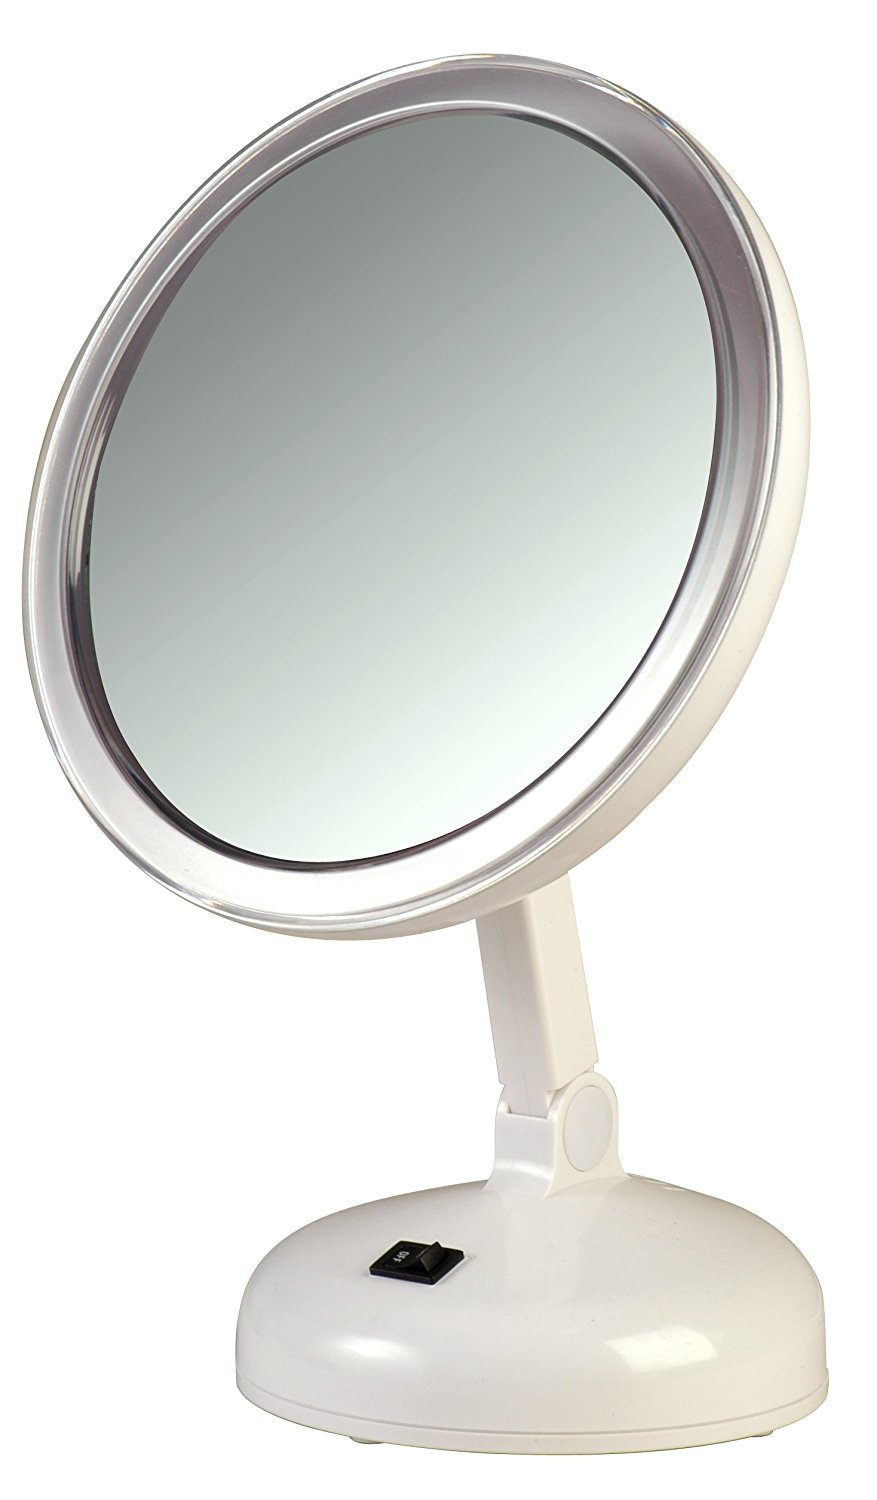 Best Lighted Vanity Mirror-Floxite Daylight Cosmetic Mirror